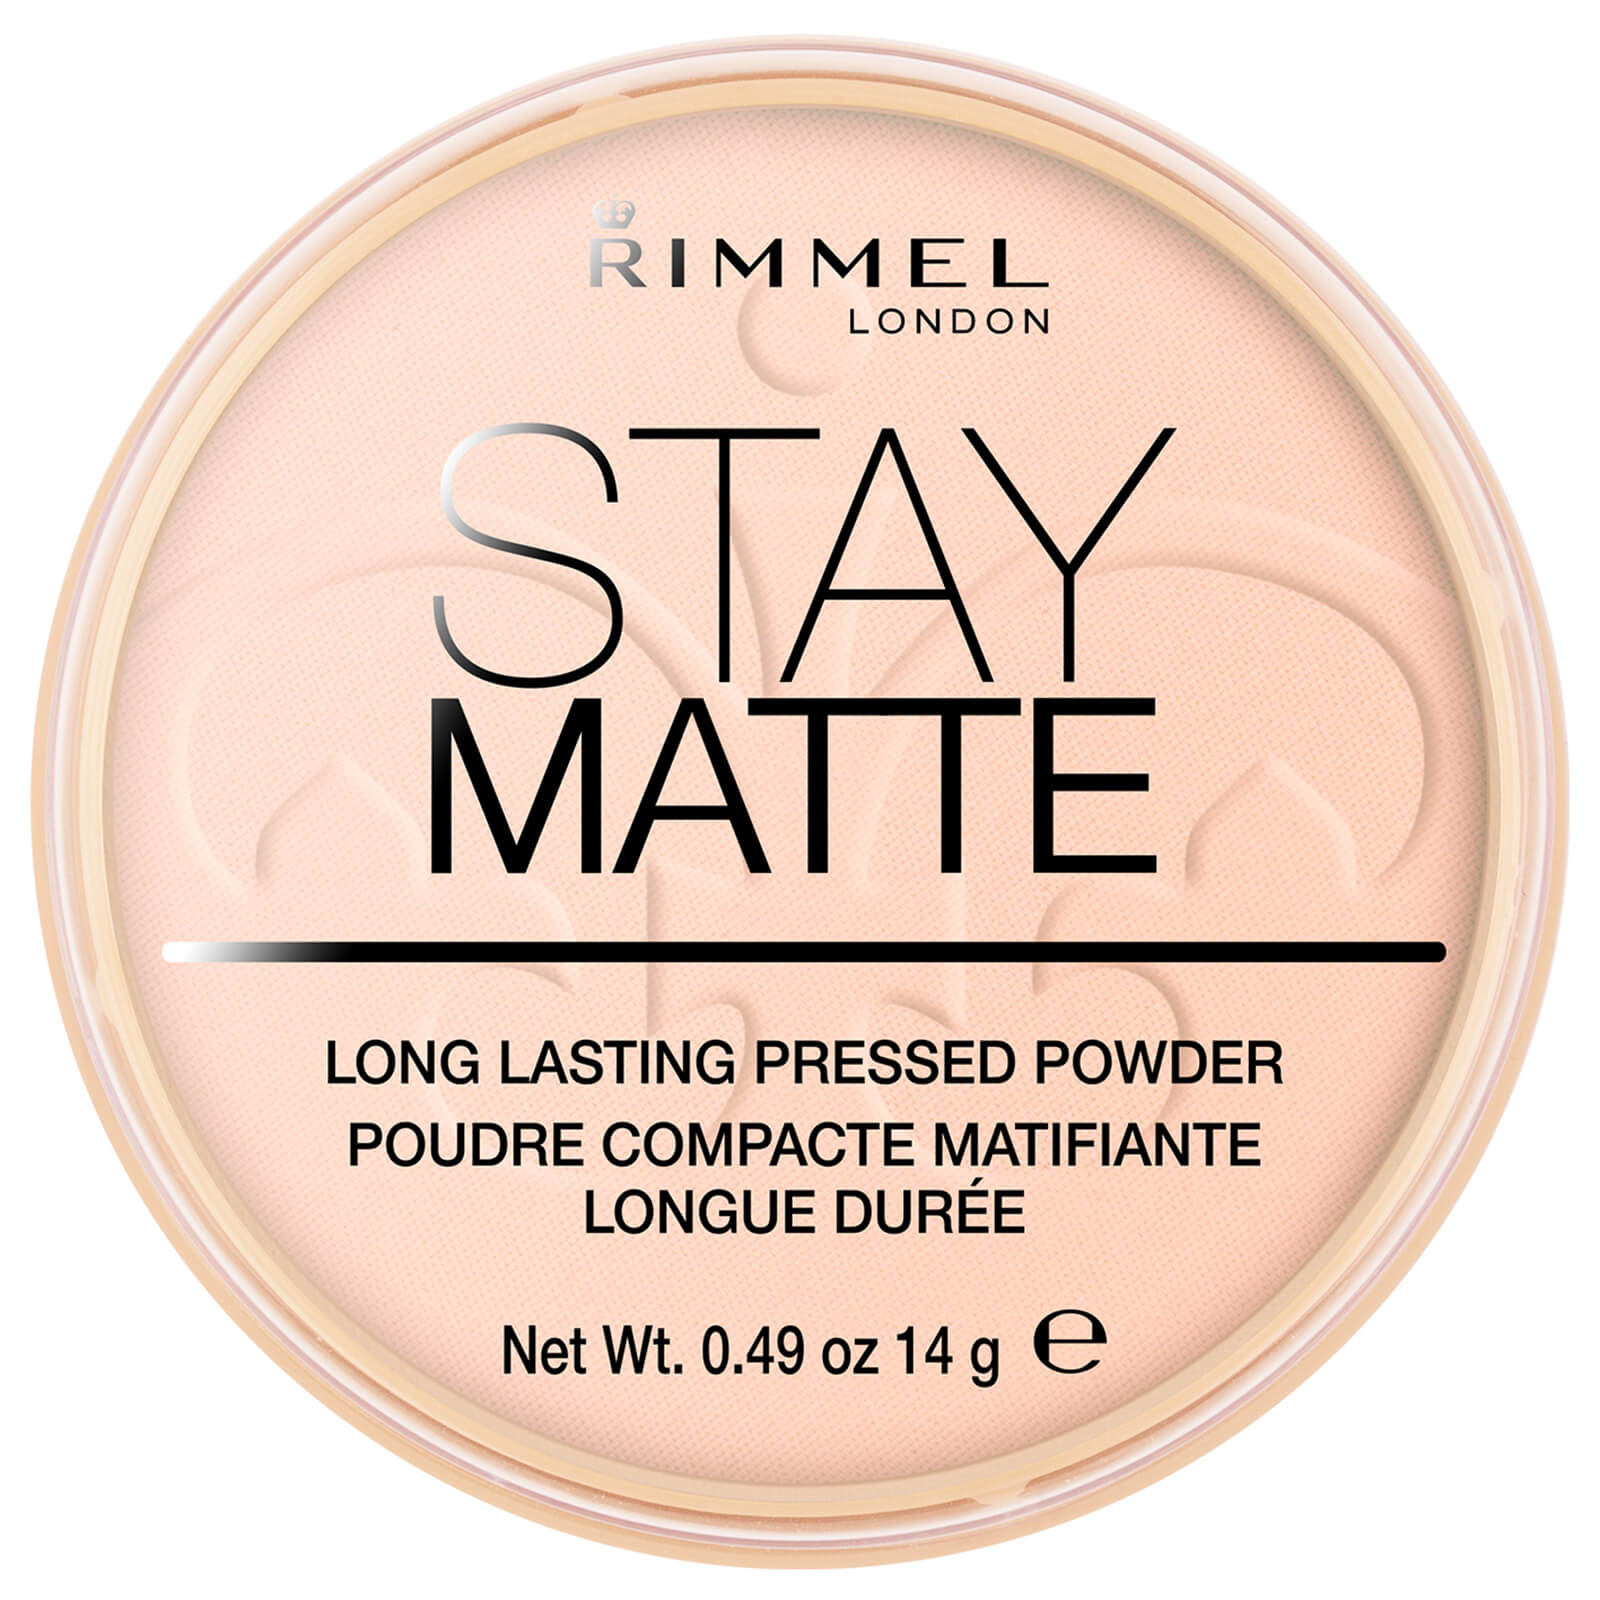 rimmel stay matte pressed powder (various shades) - pink blossom